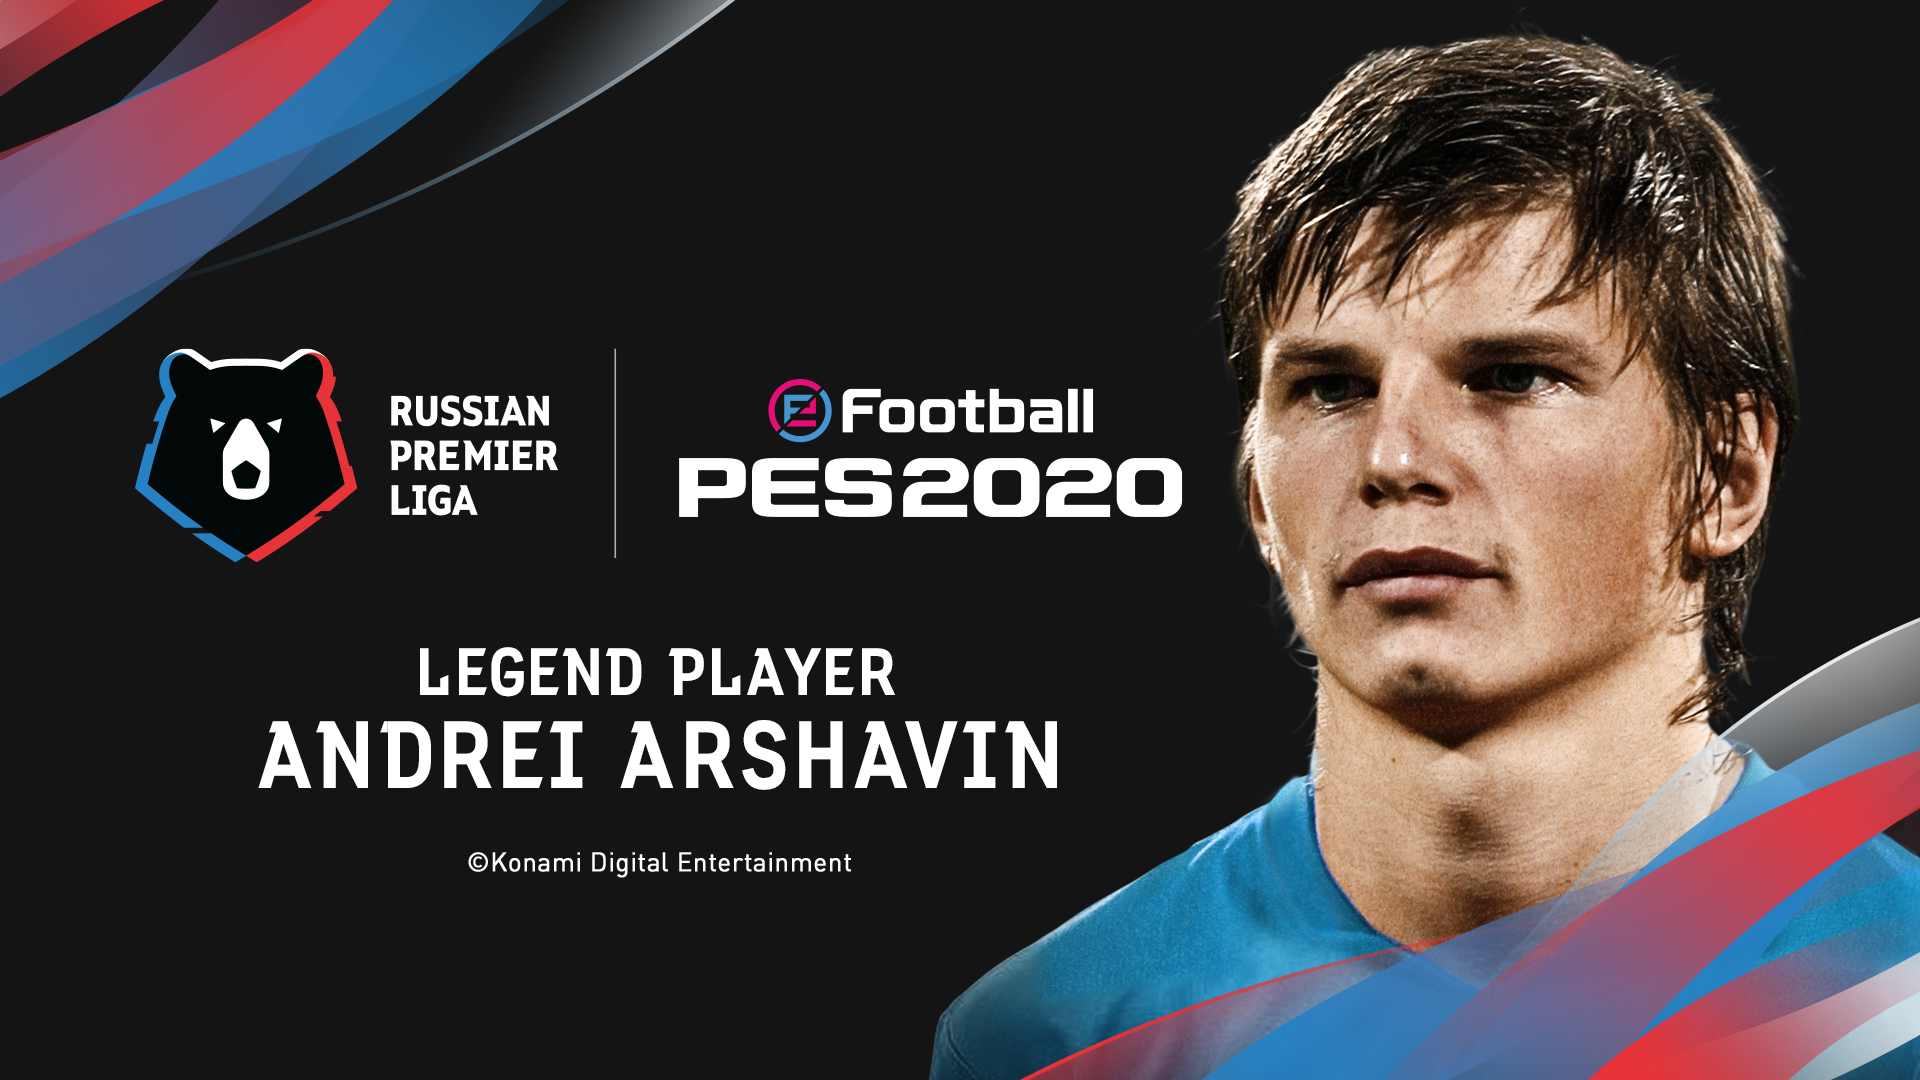 Andrey Arshavin unveiled by KONAMI as a Legend in eFootball